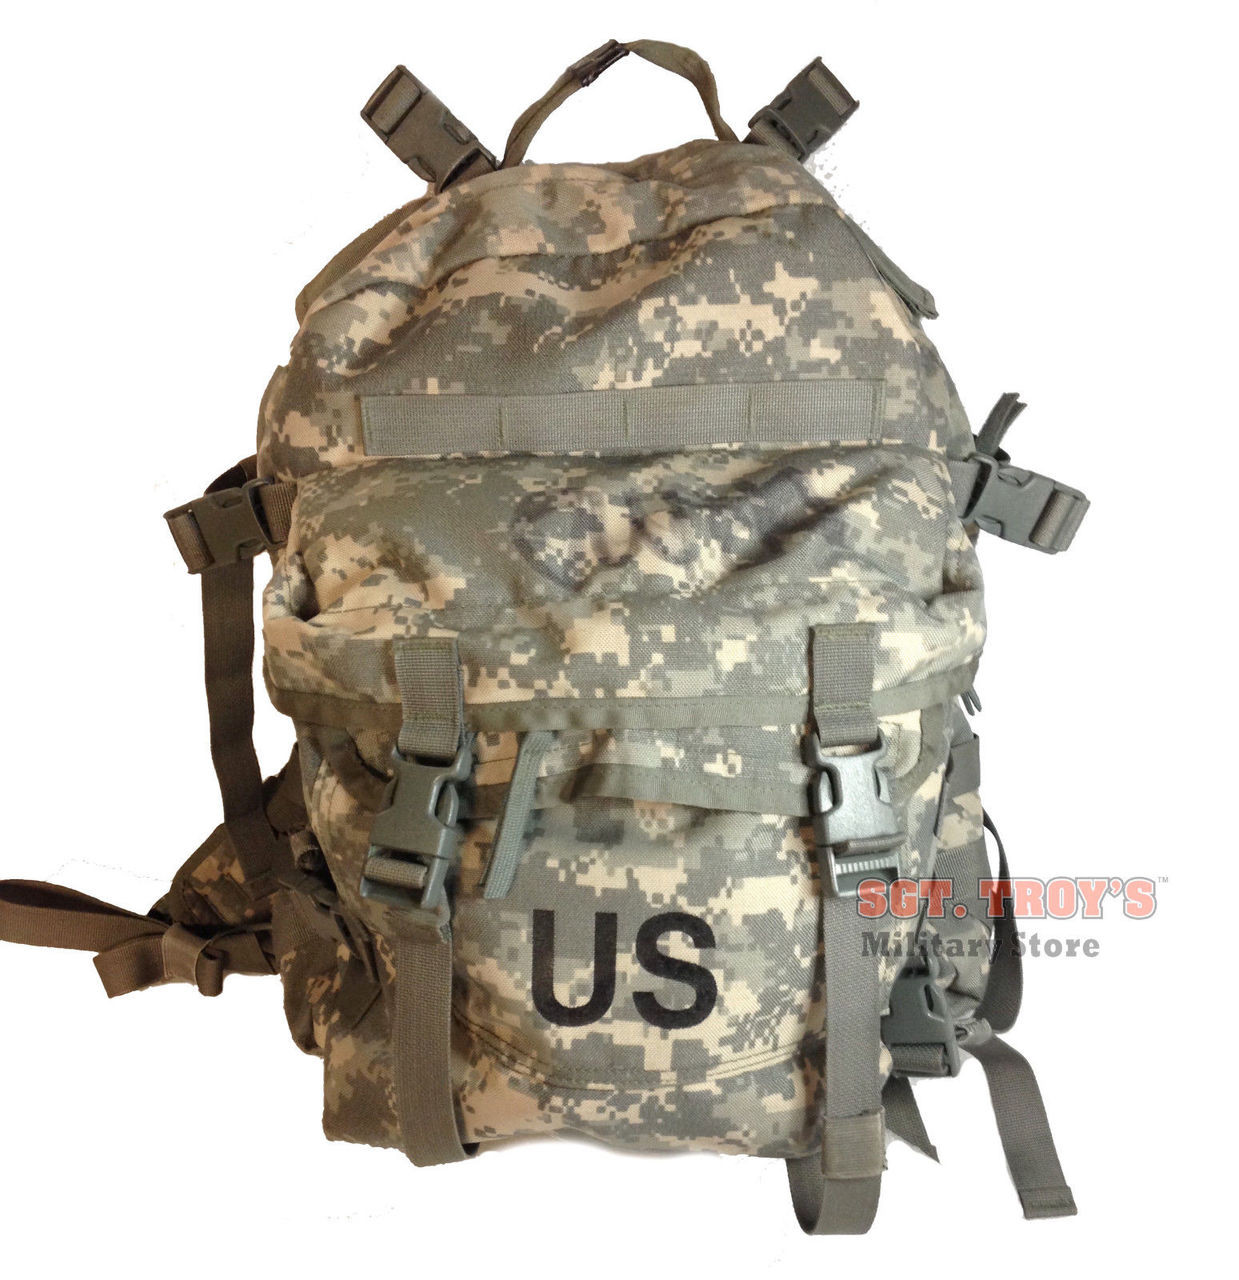 US Military Molle II Load Carrying Equipment 3 Day ACU Hiking Camping